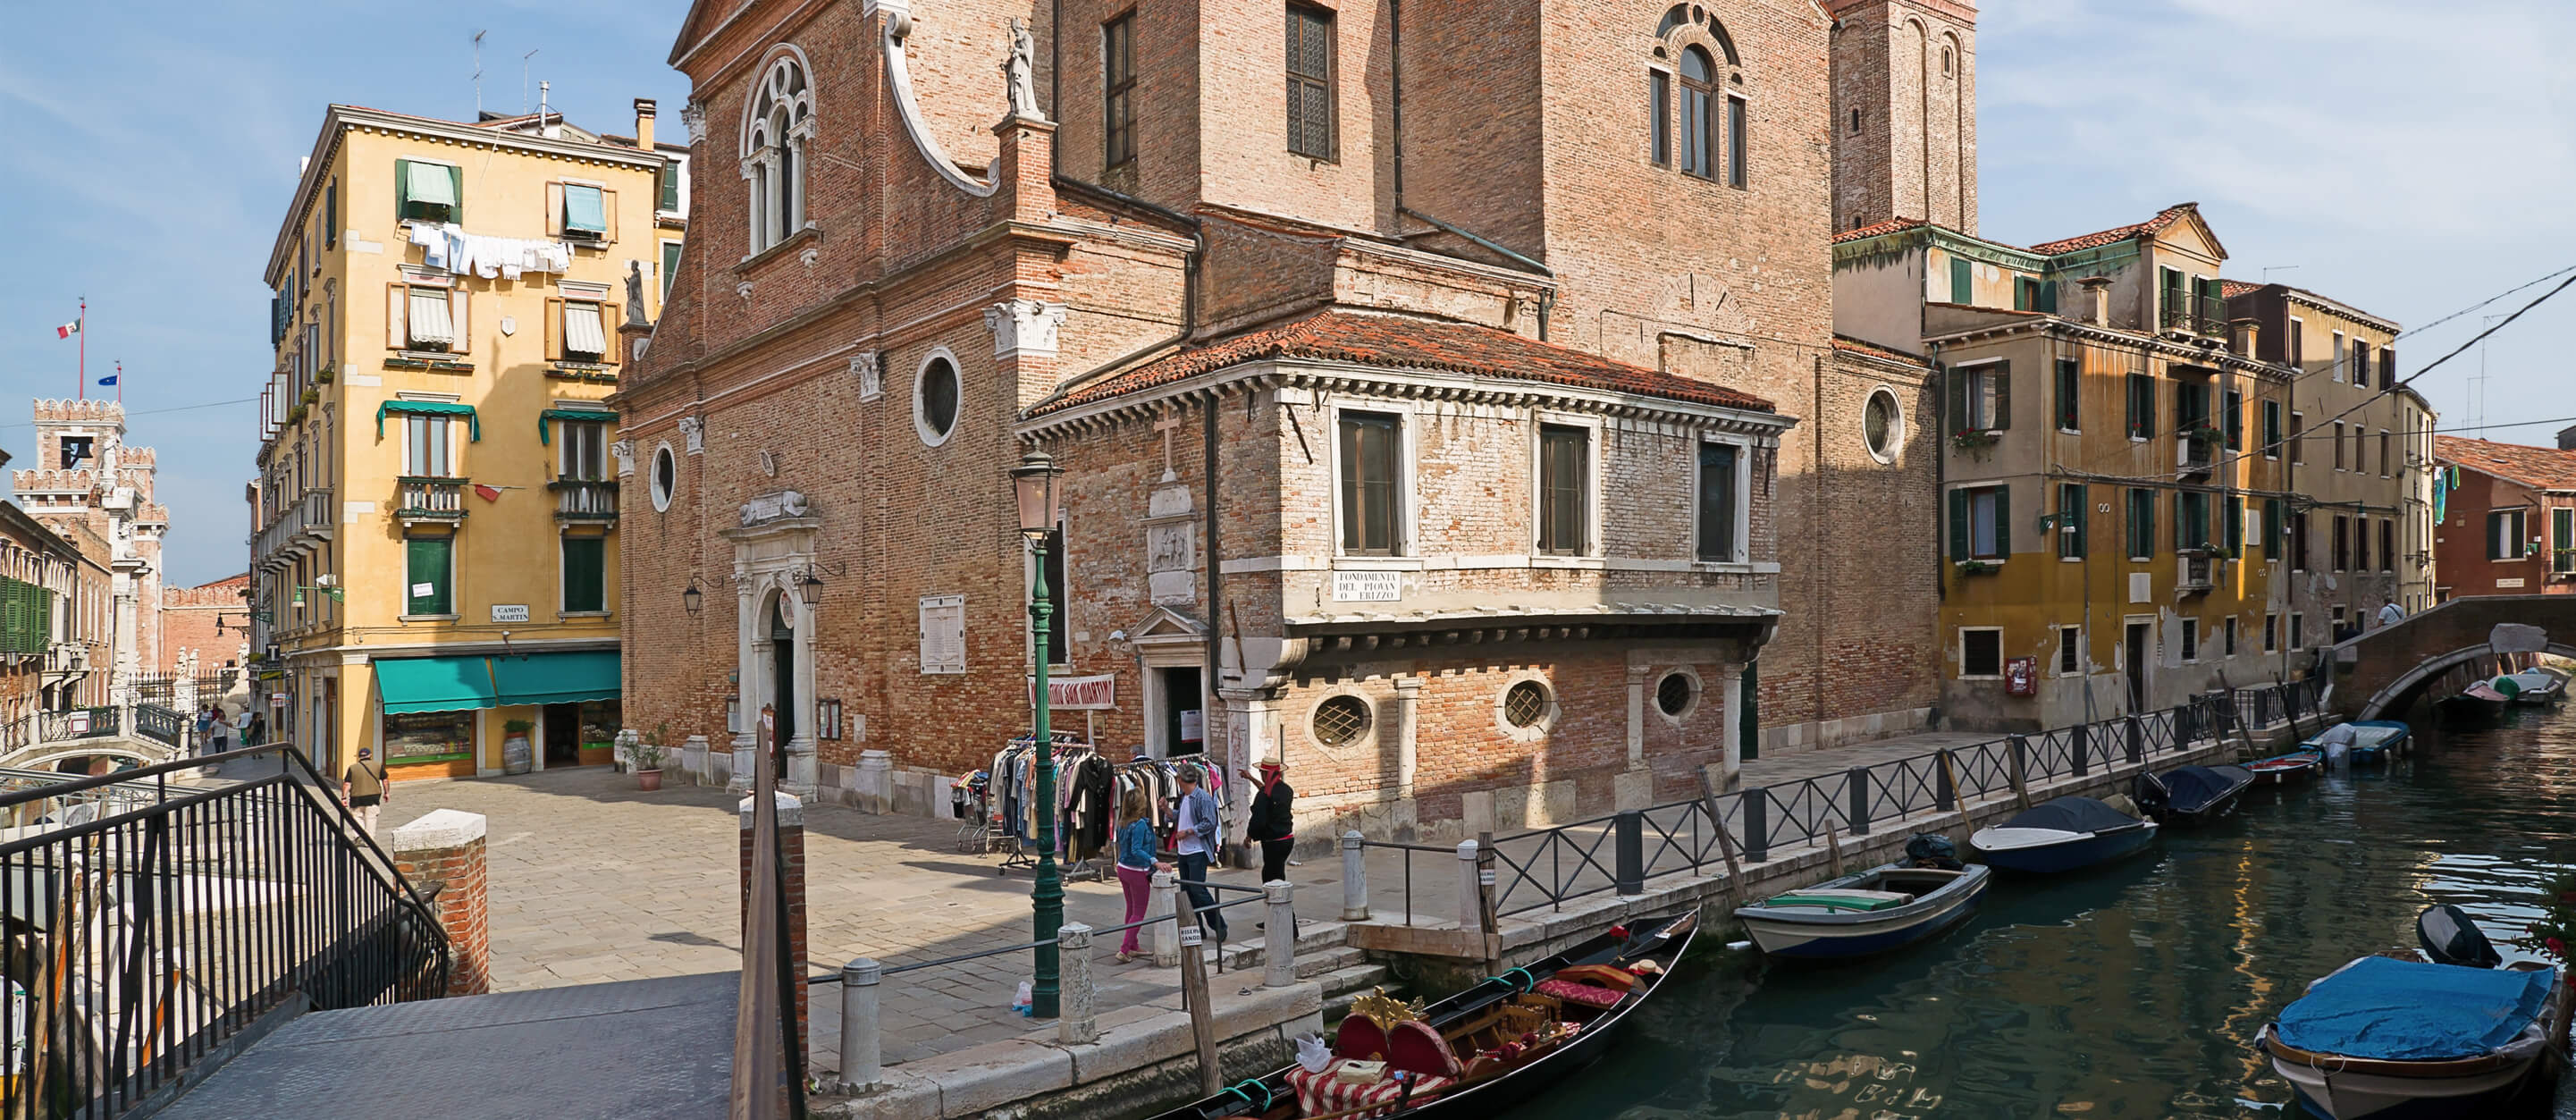 10 things to see in Venice